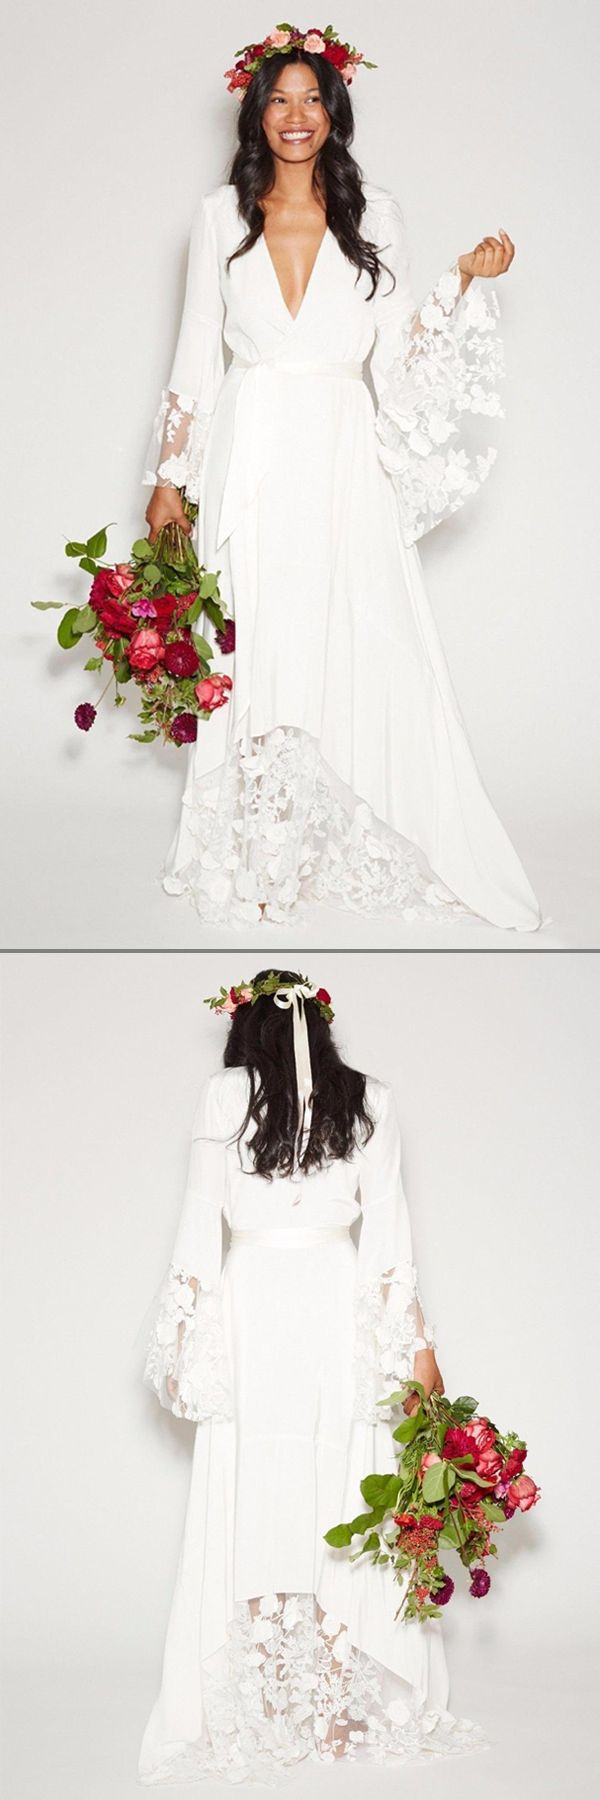 For a breezy boho vibe on your wedding day, wear a flower crown with your long sleeved wedding dress.